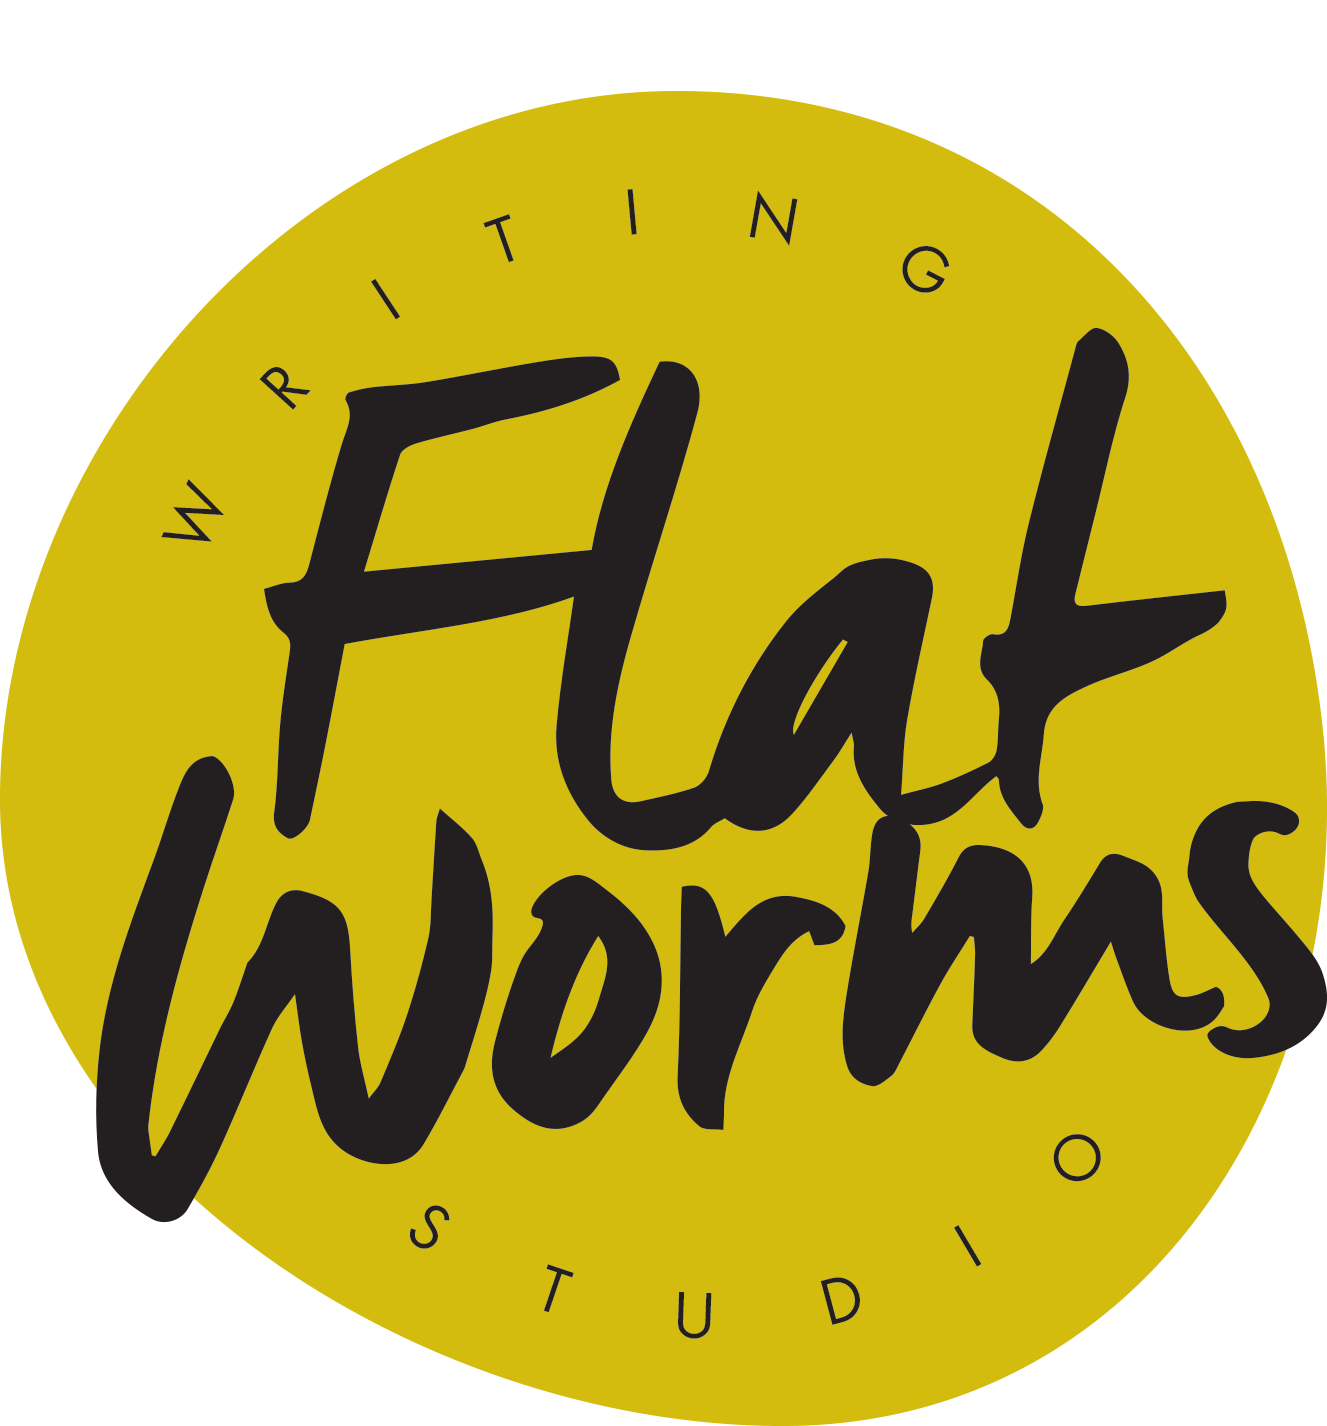 The Flat Worms Writing Studio